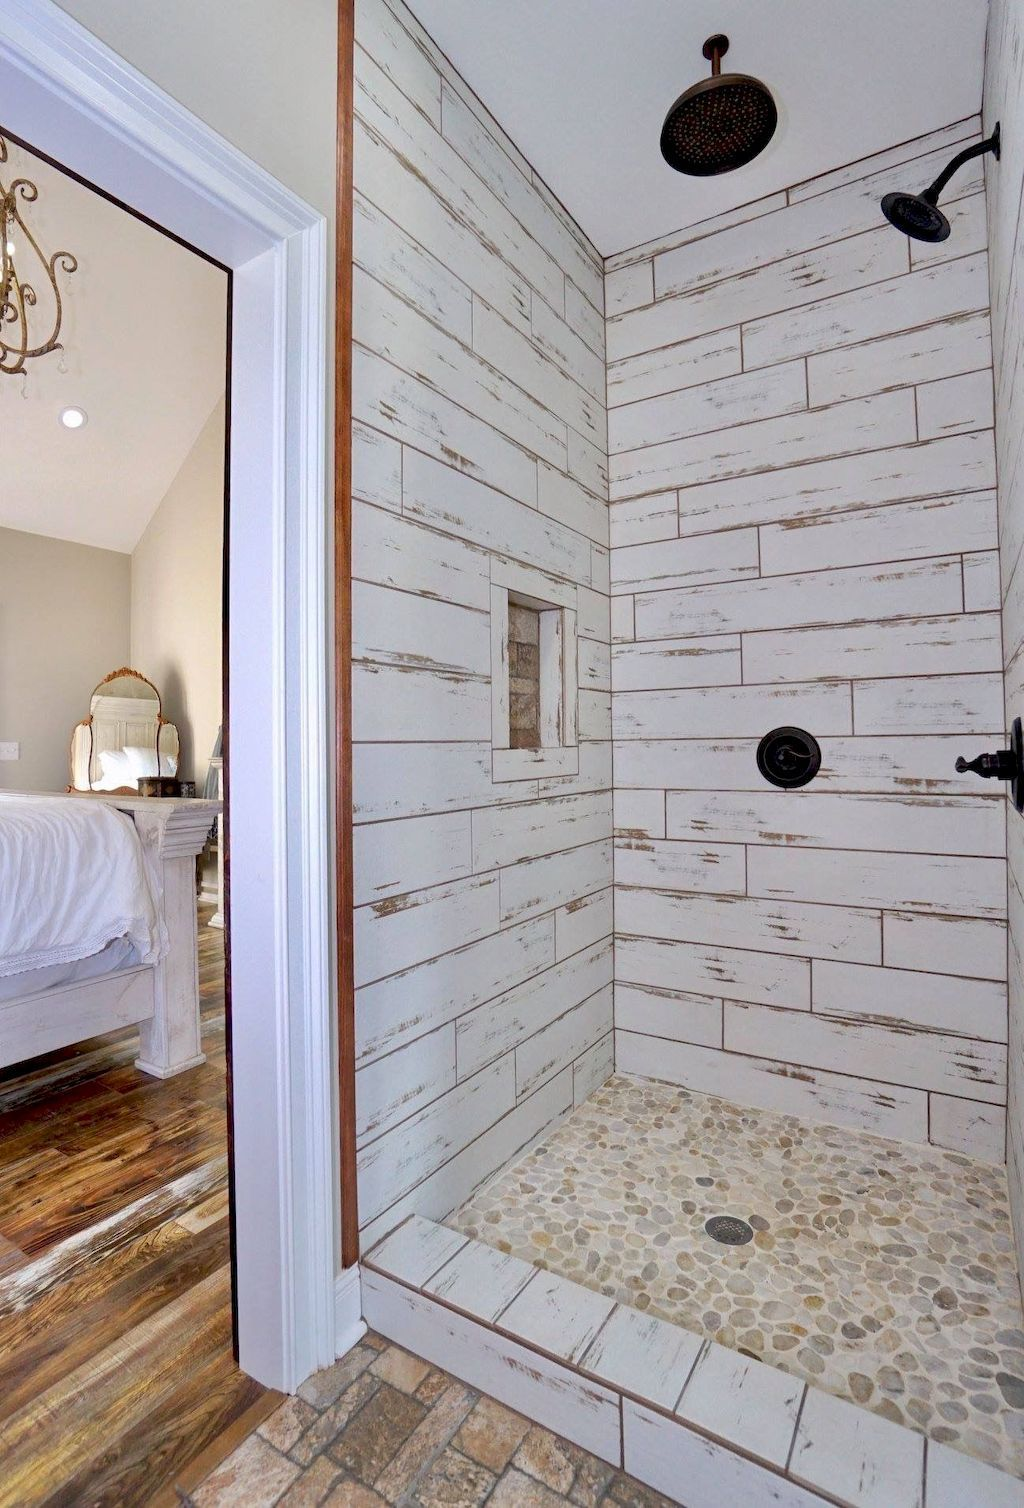 Tile Shower Ideas Commonly Showers Used To Be Simple Area For Worry That Any Exclusive Architectu Farmhouse Shower Bathrooms Remodel Rustic Bathroom Shower